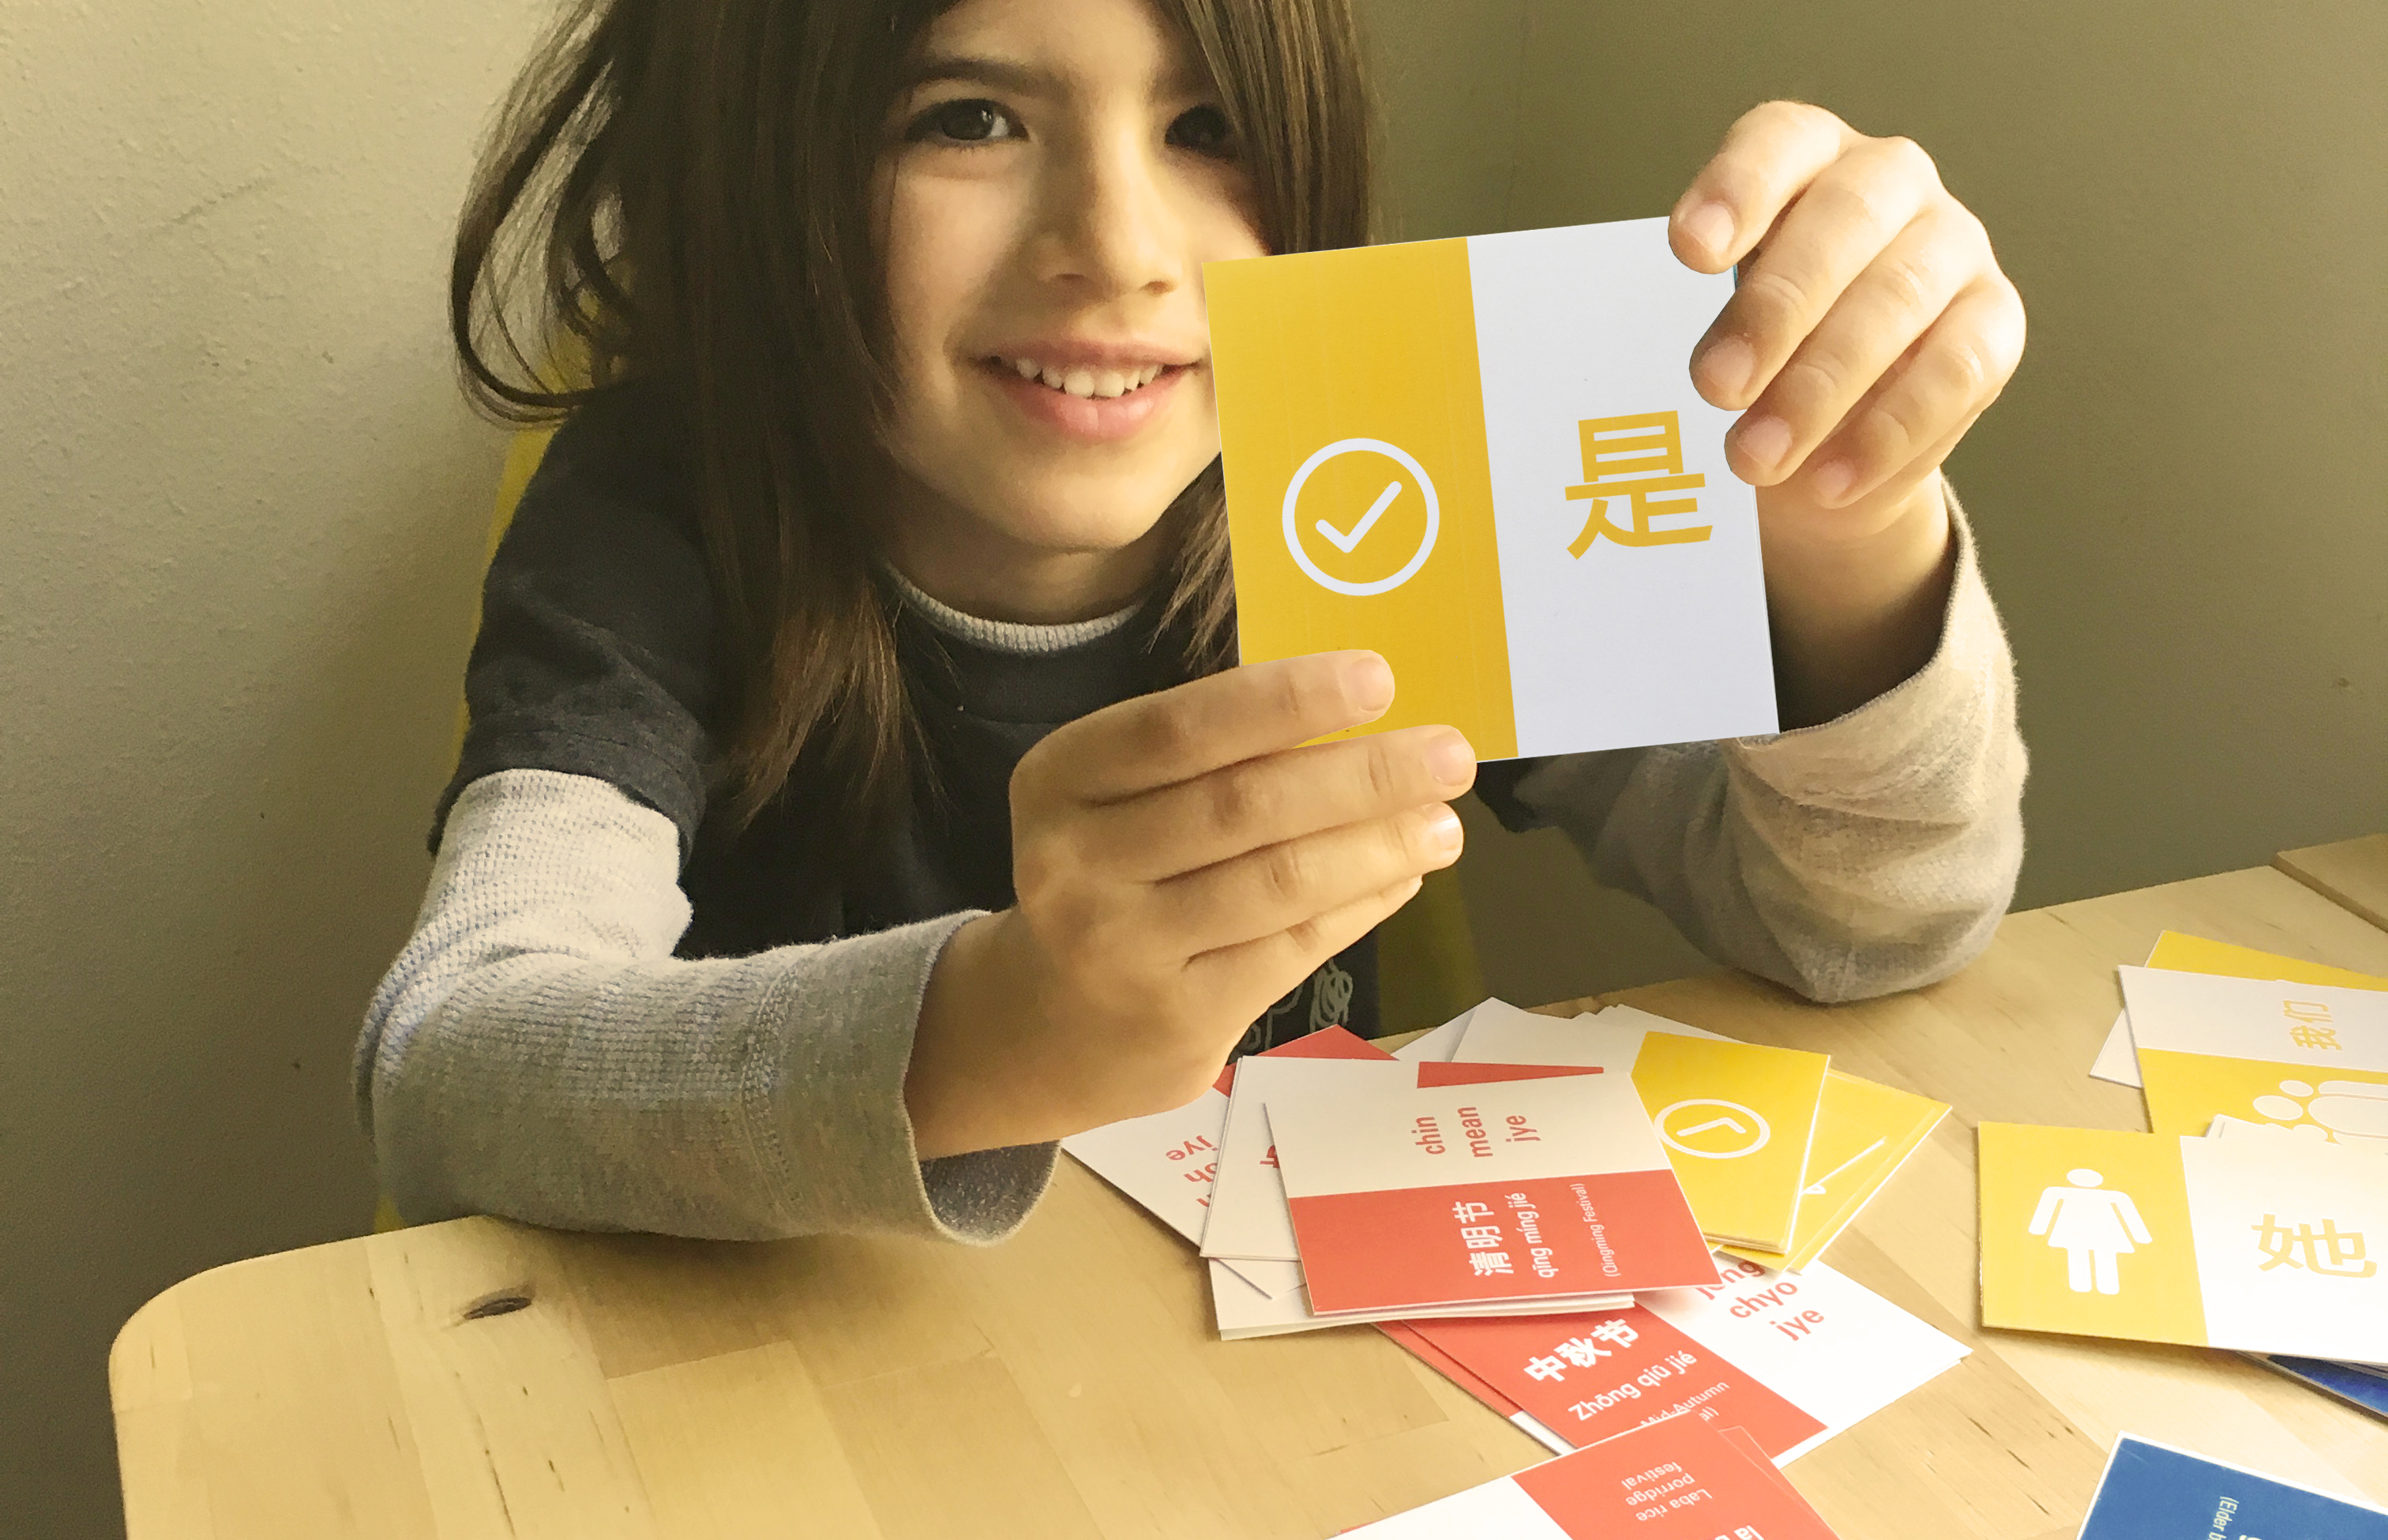 kid holding card